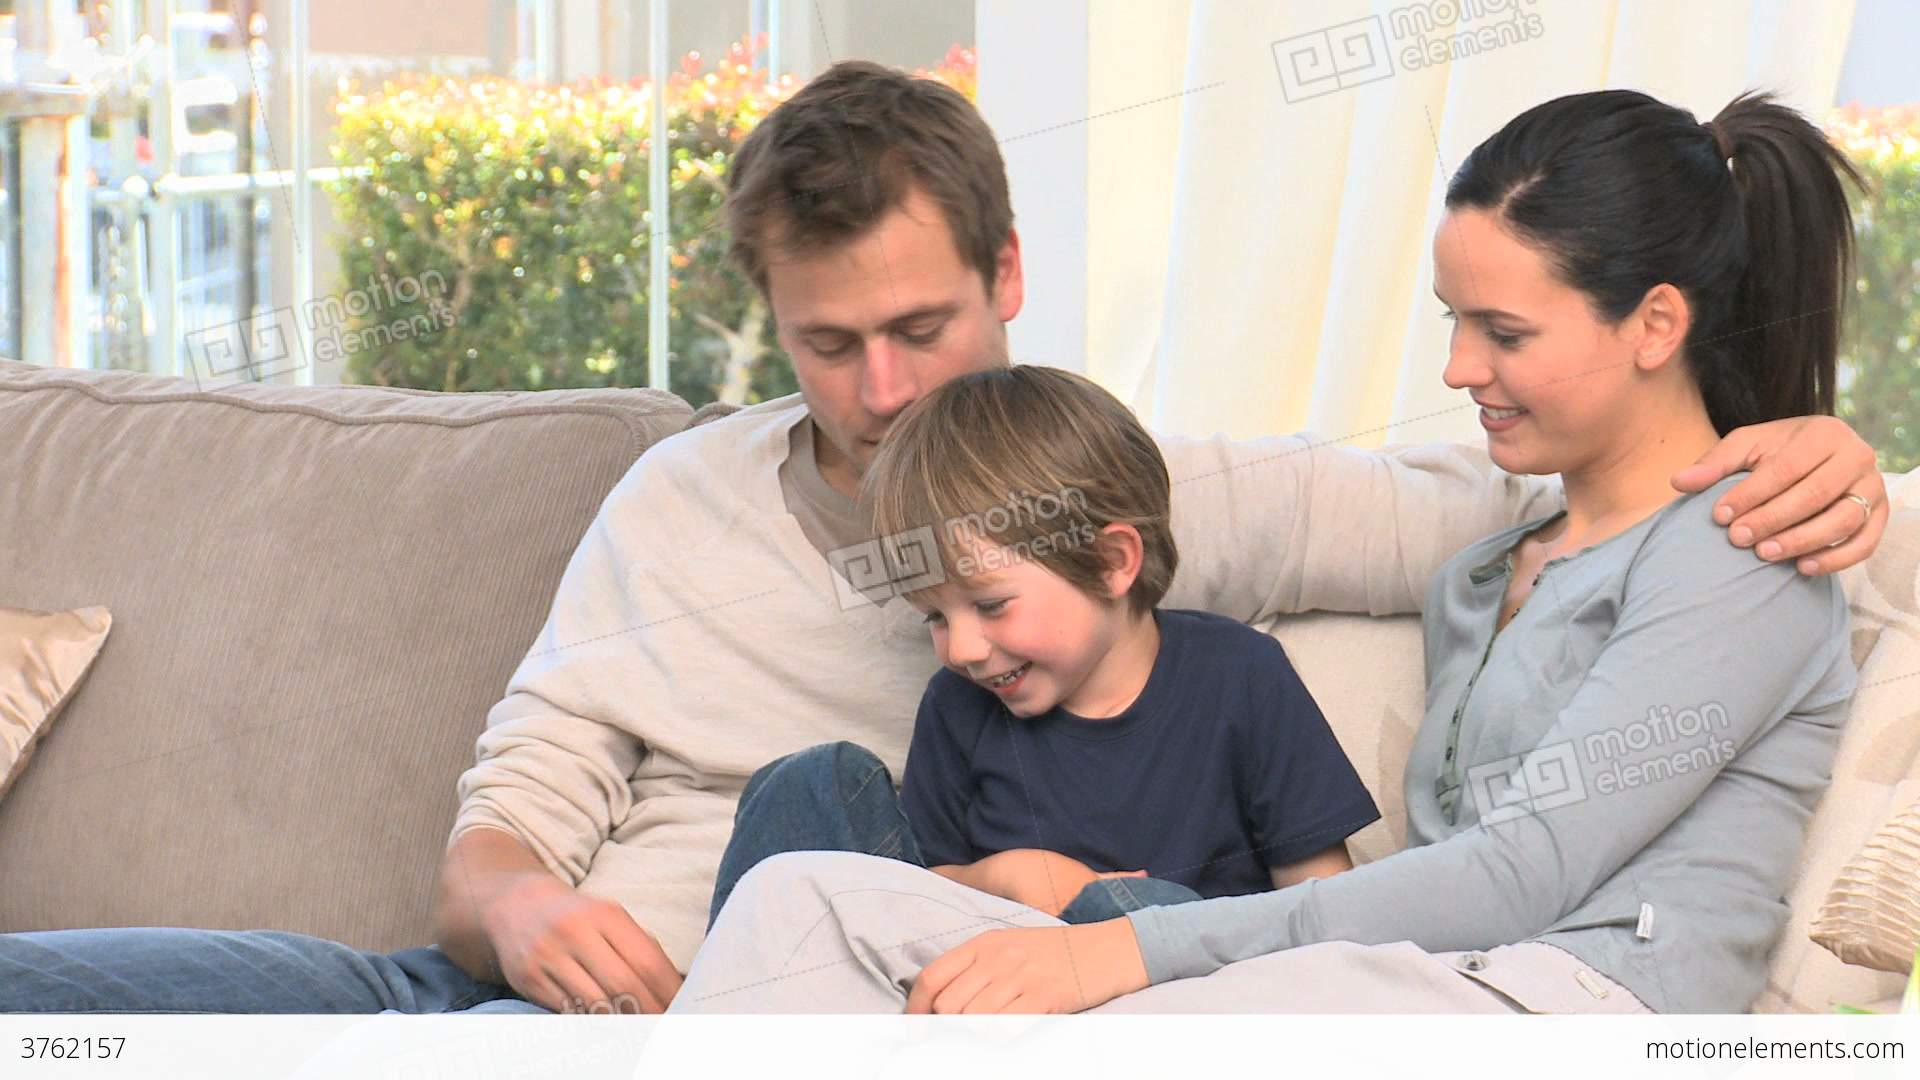 Familly Tallking Together On A Sofa Stock Video Footage | Royalty ...